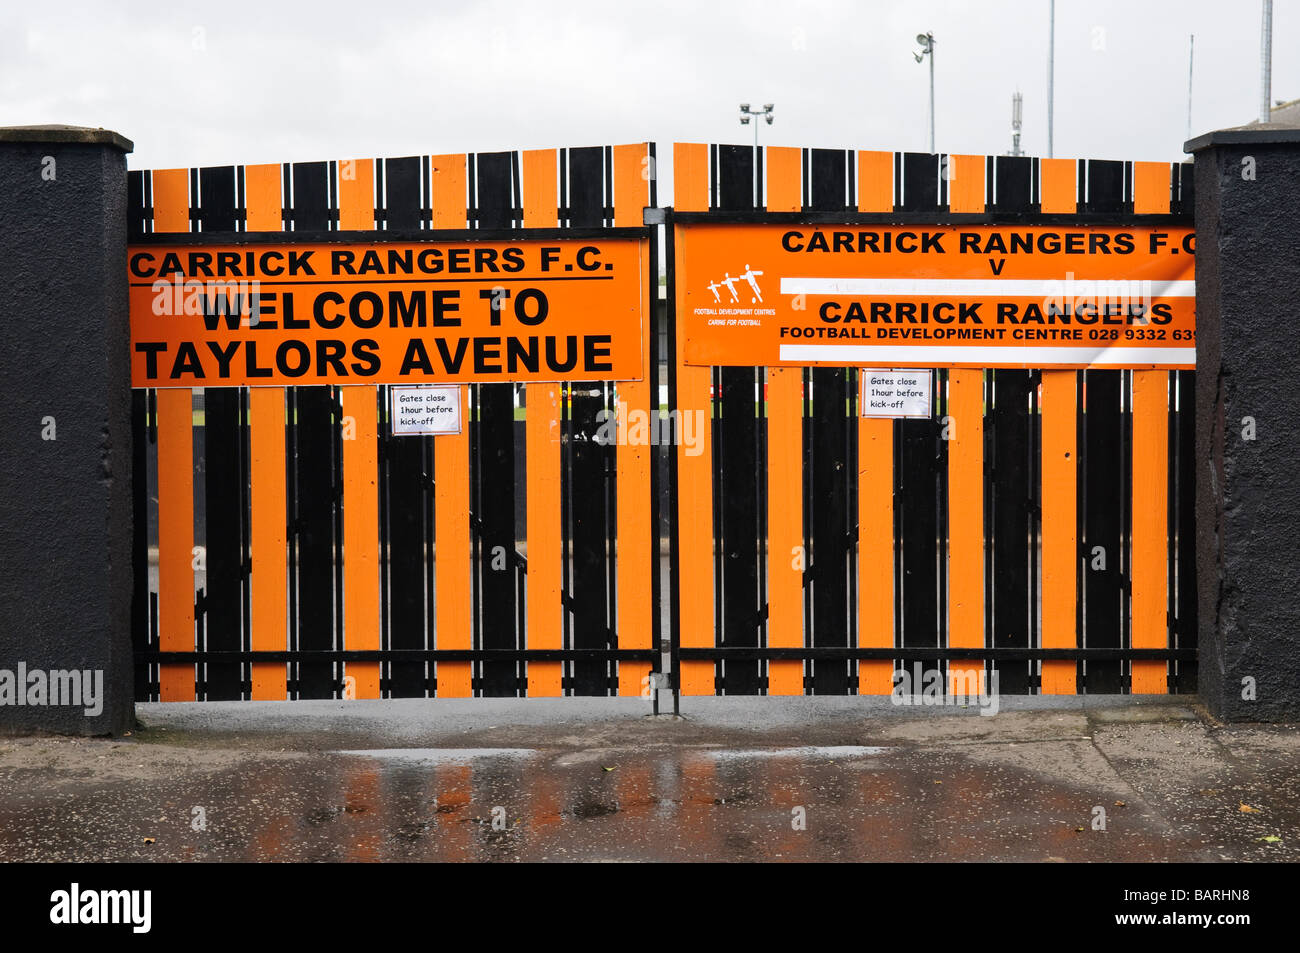 Front gates to Taylor's Avenue, home ground of Carrick Rangers football (soccer) team. Stock Photo